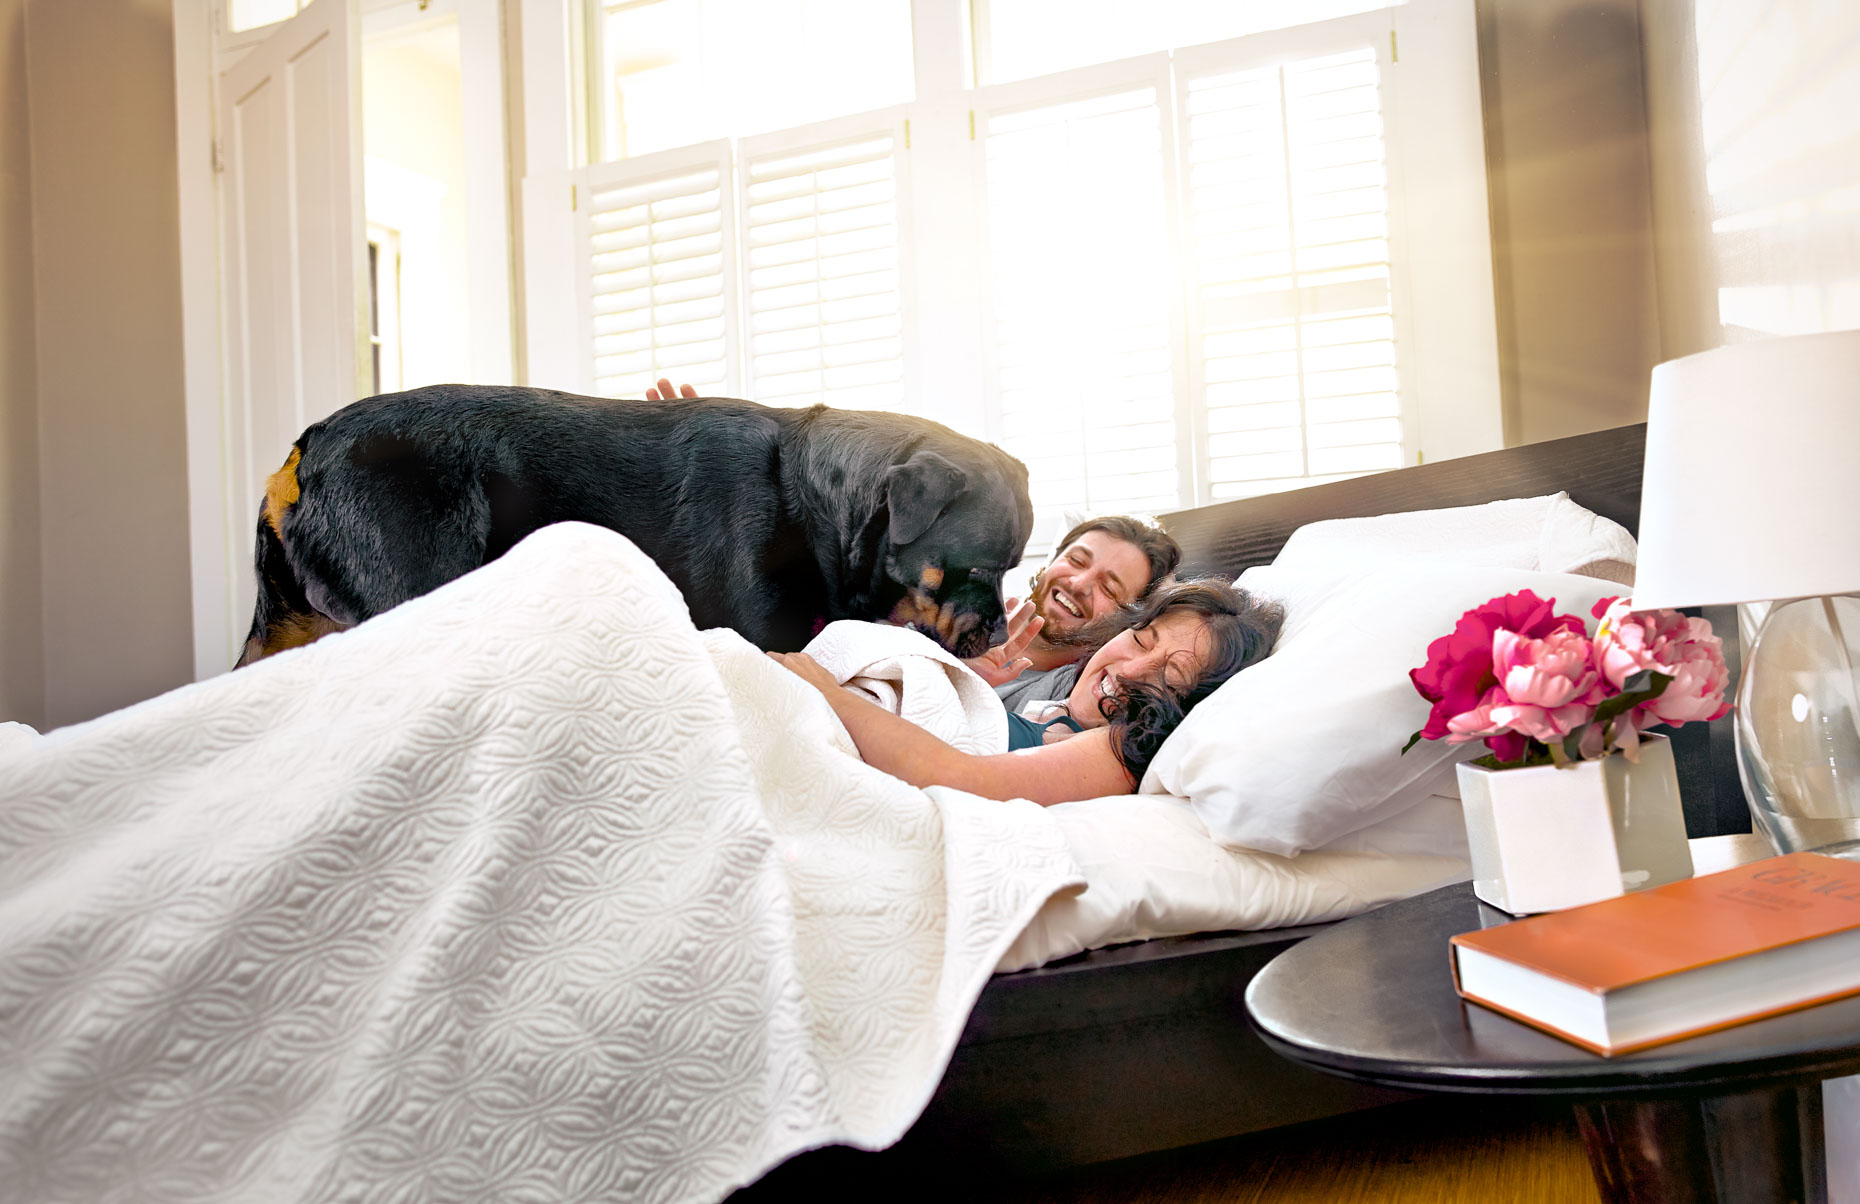 03 2016PP 81104 Young couple in bed with dog 2013 RB - Version 2A